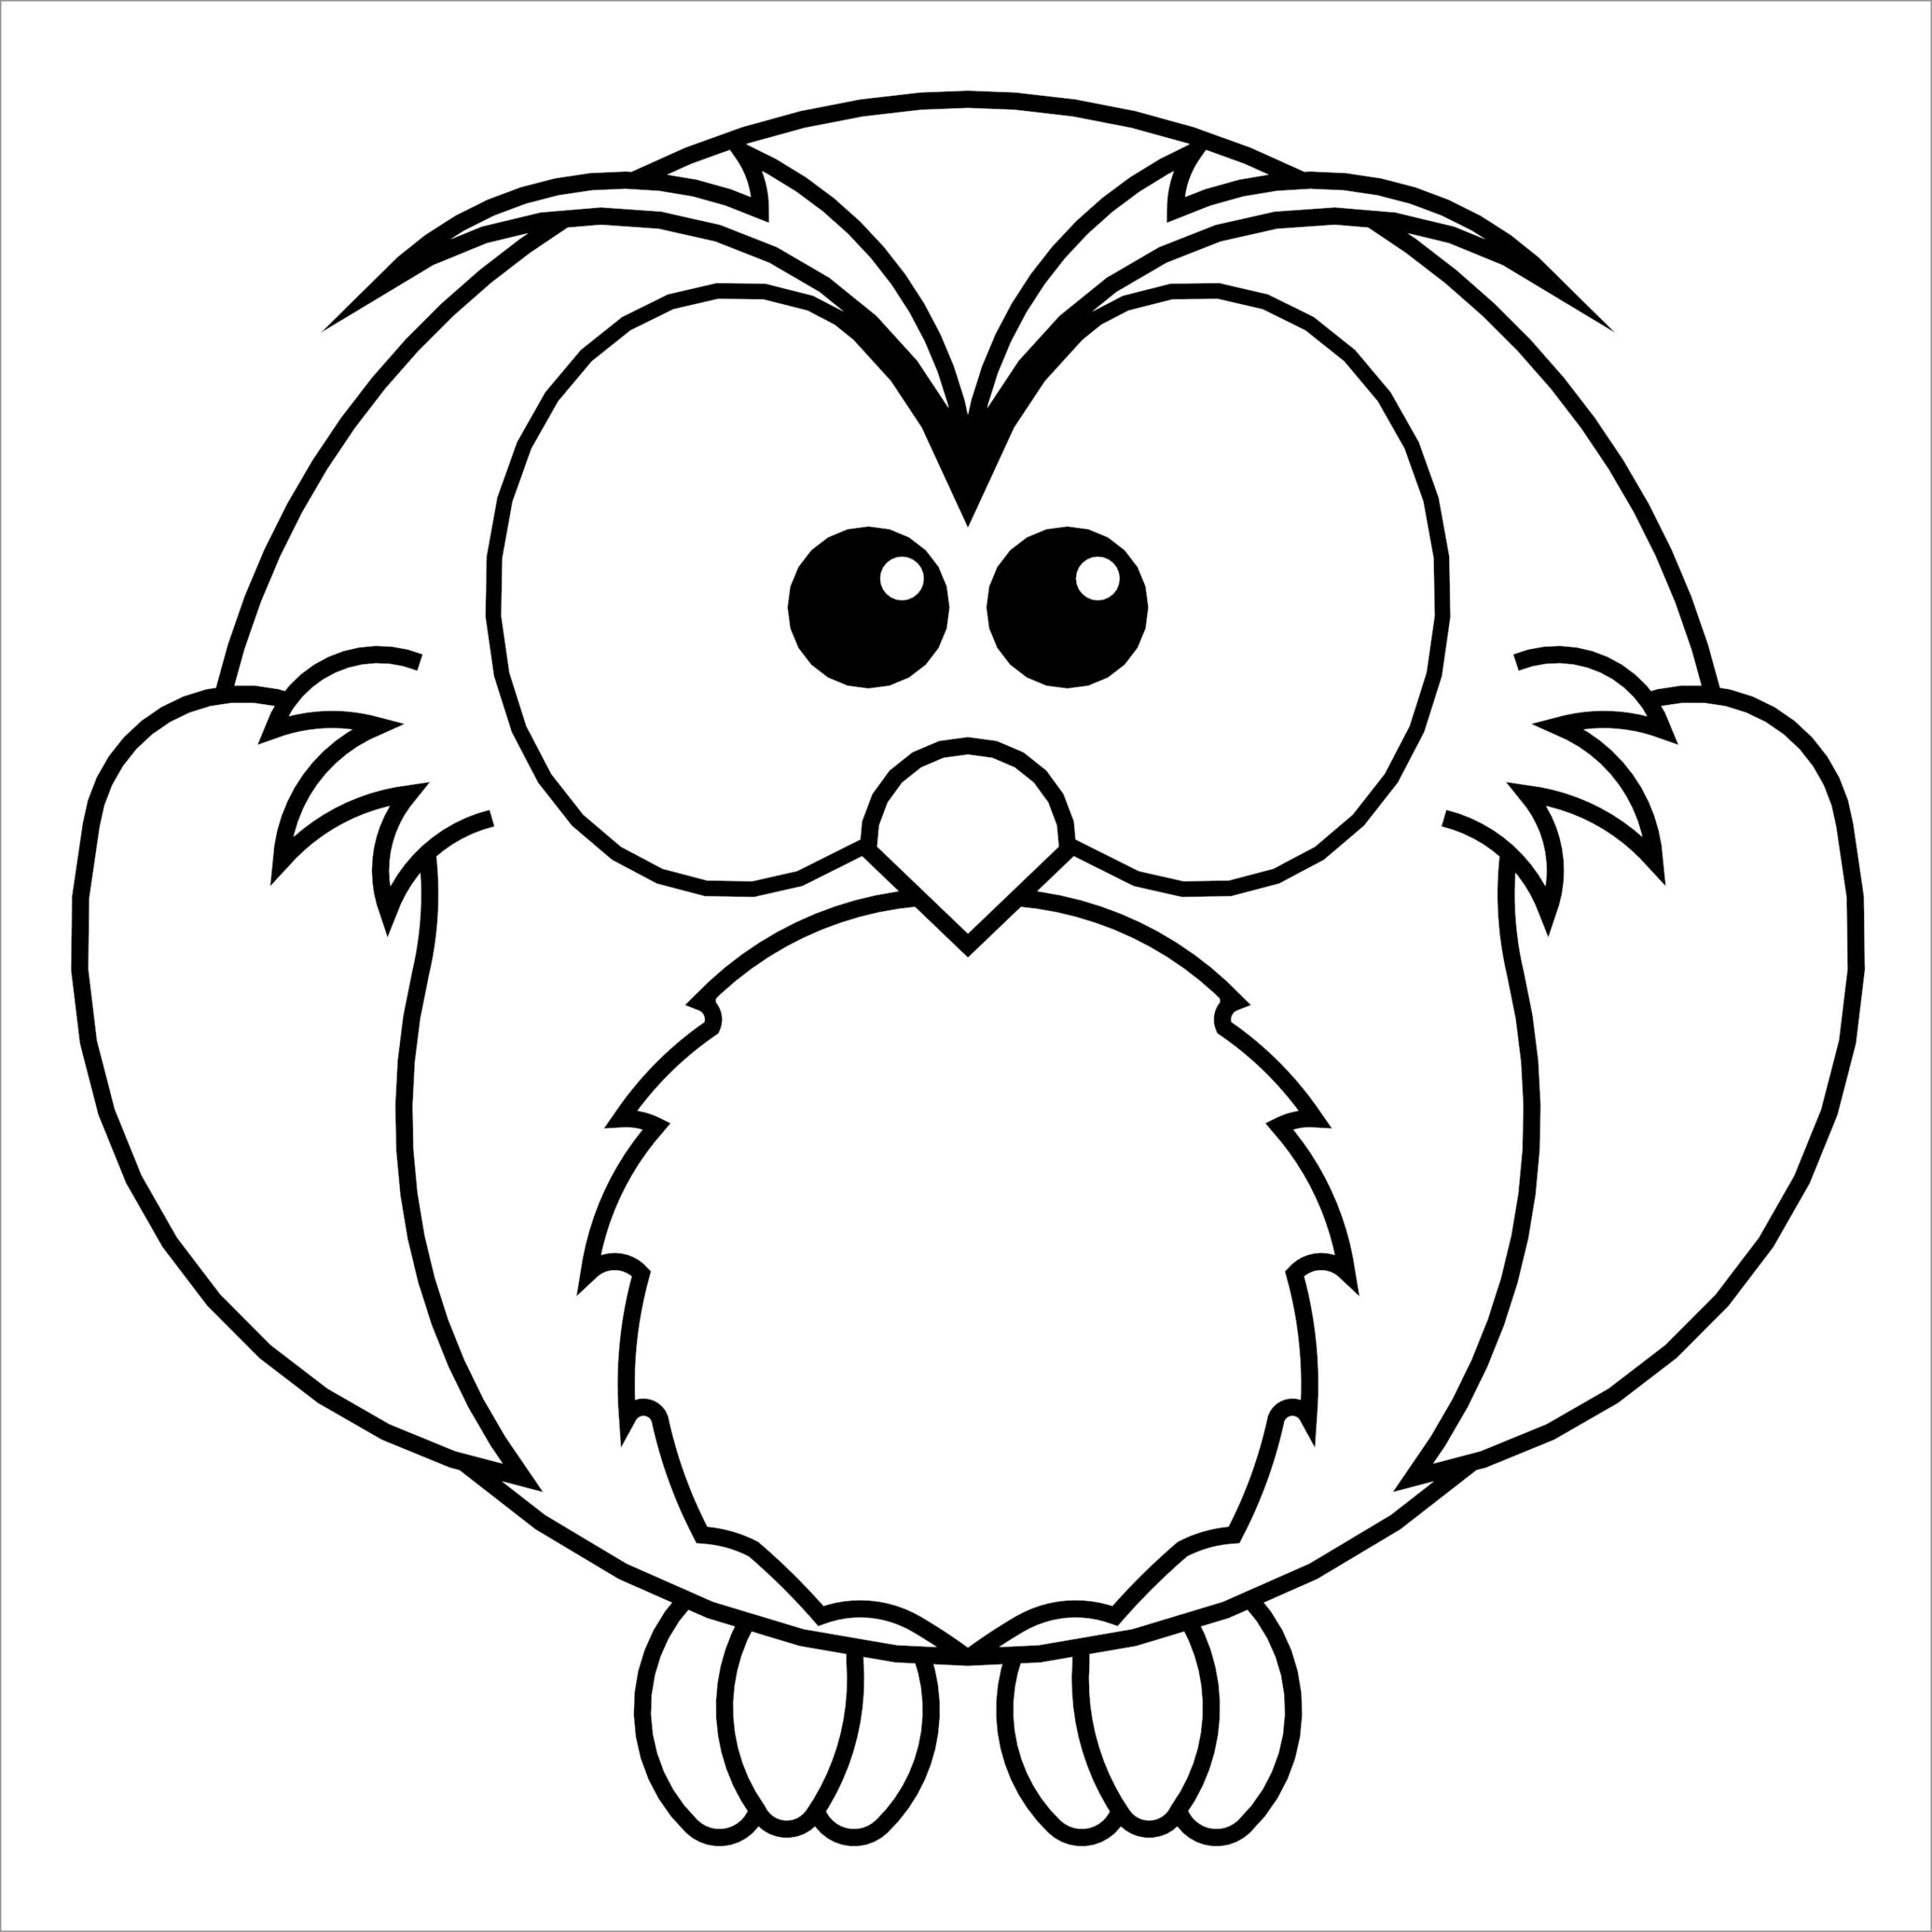 owl coloring picture owl coloring picture picture owl coloring